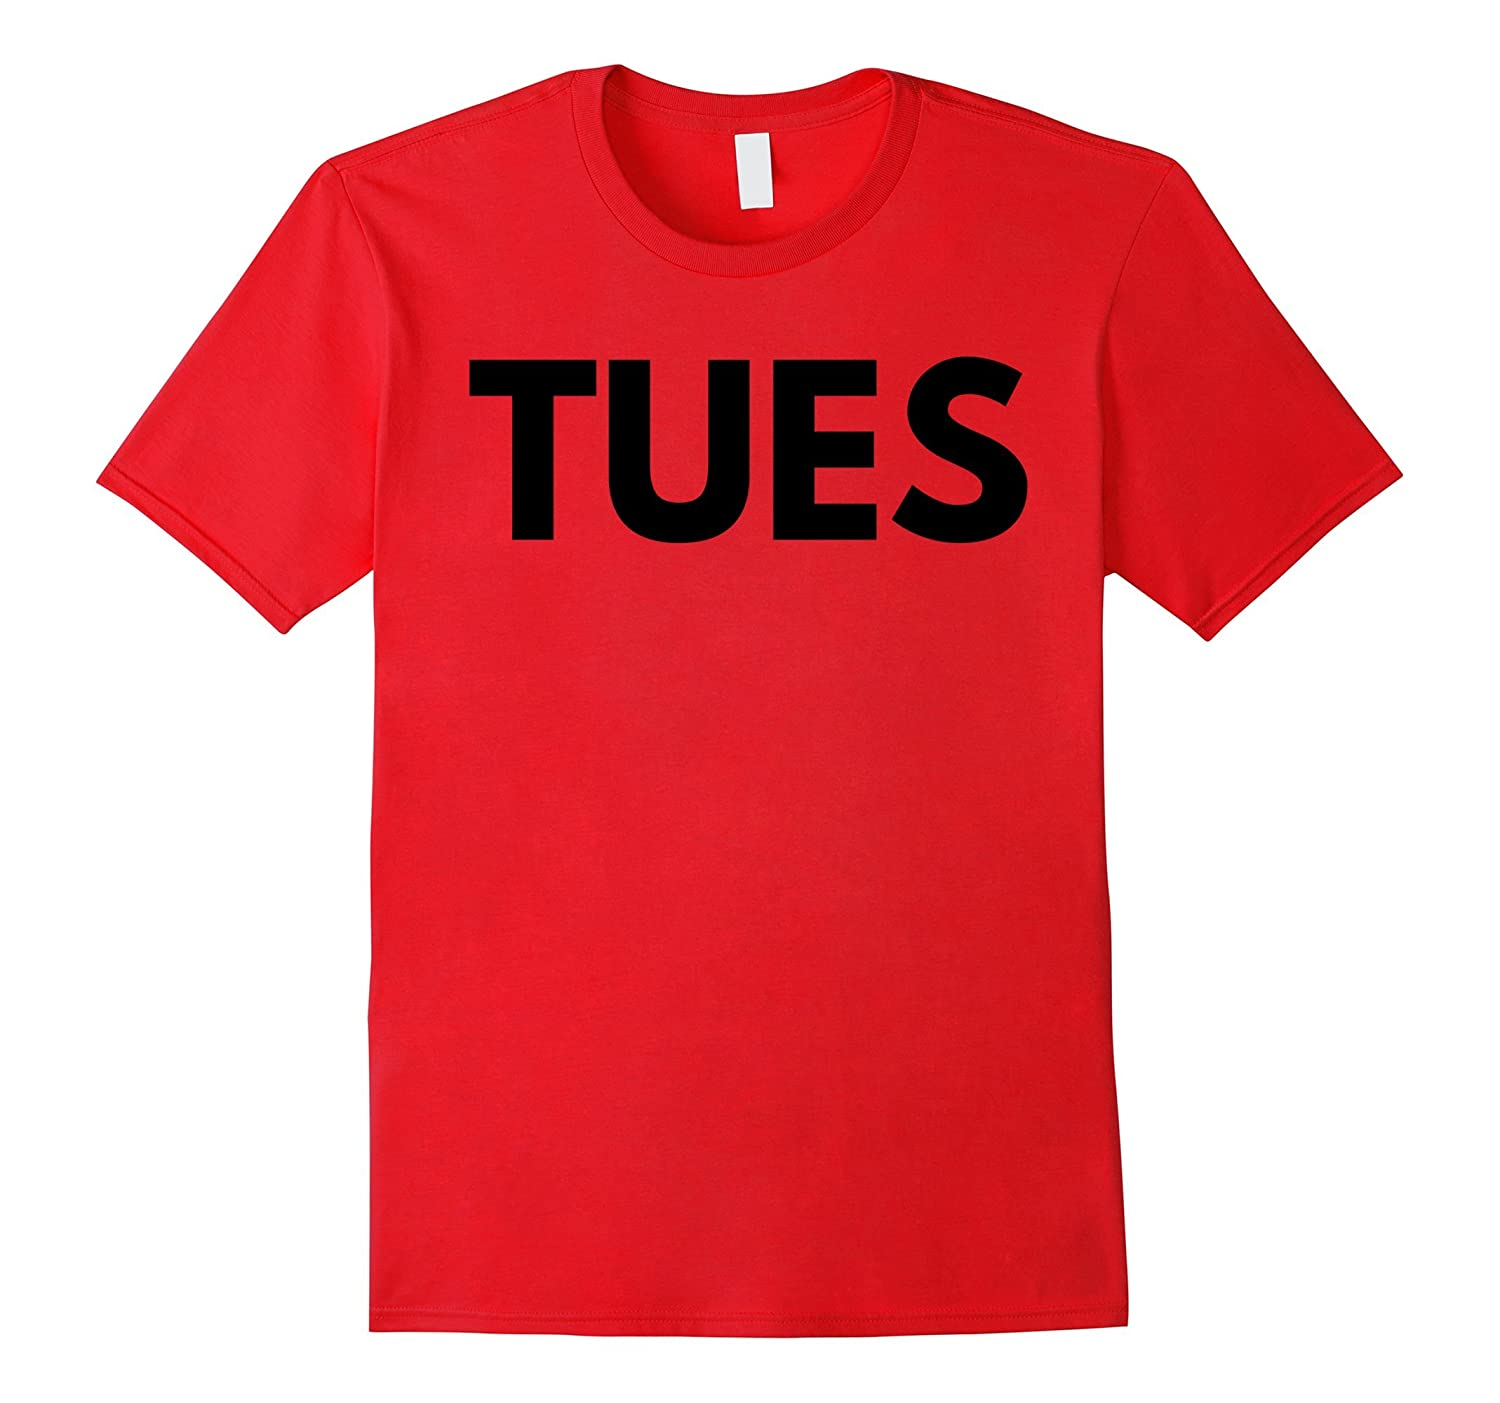 Tuesday T-Shirt Days of the Week T-Shirts, Costume, Etc-T-Shirt